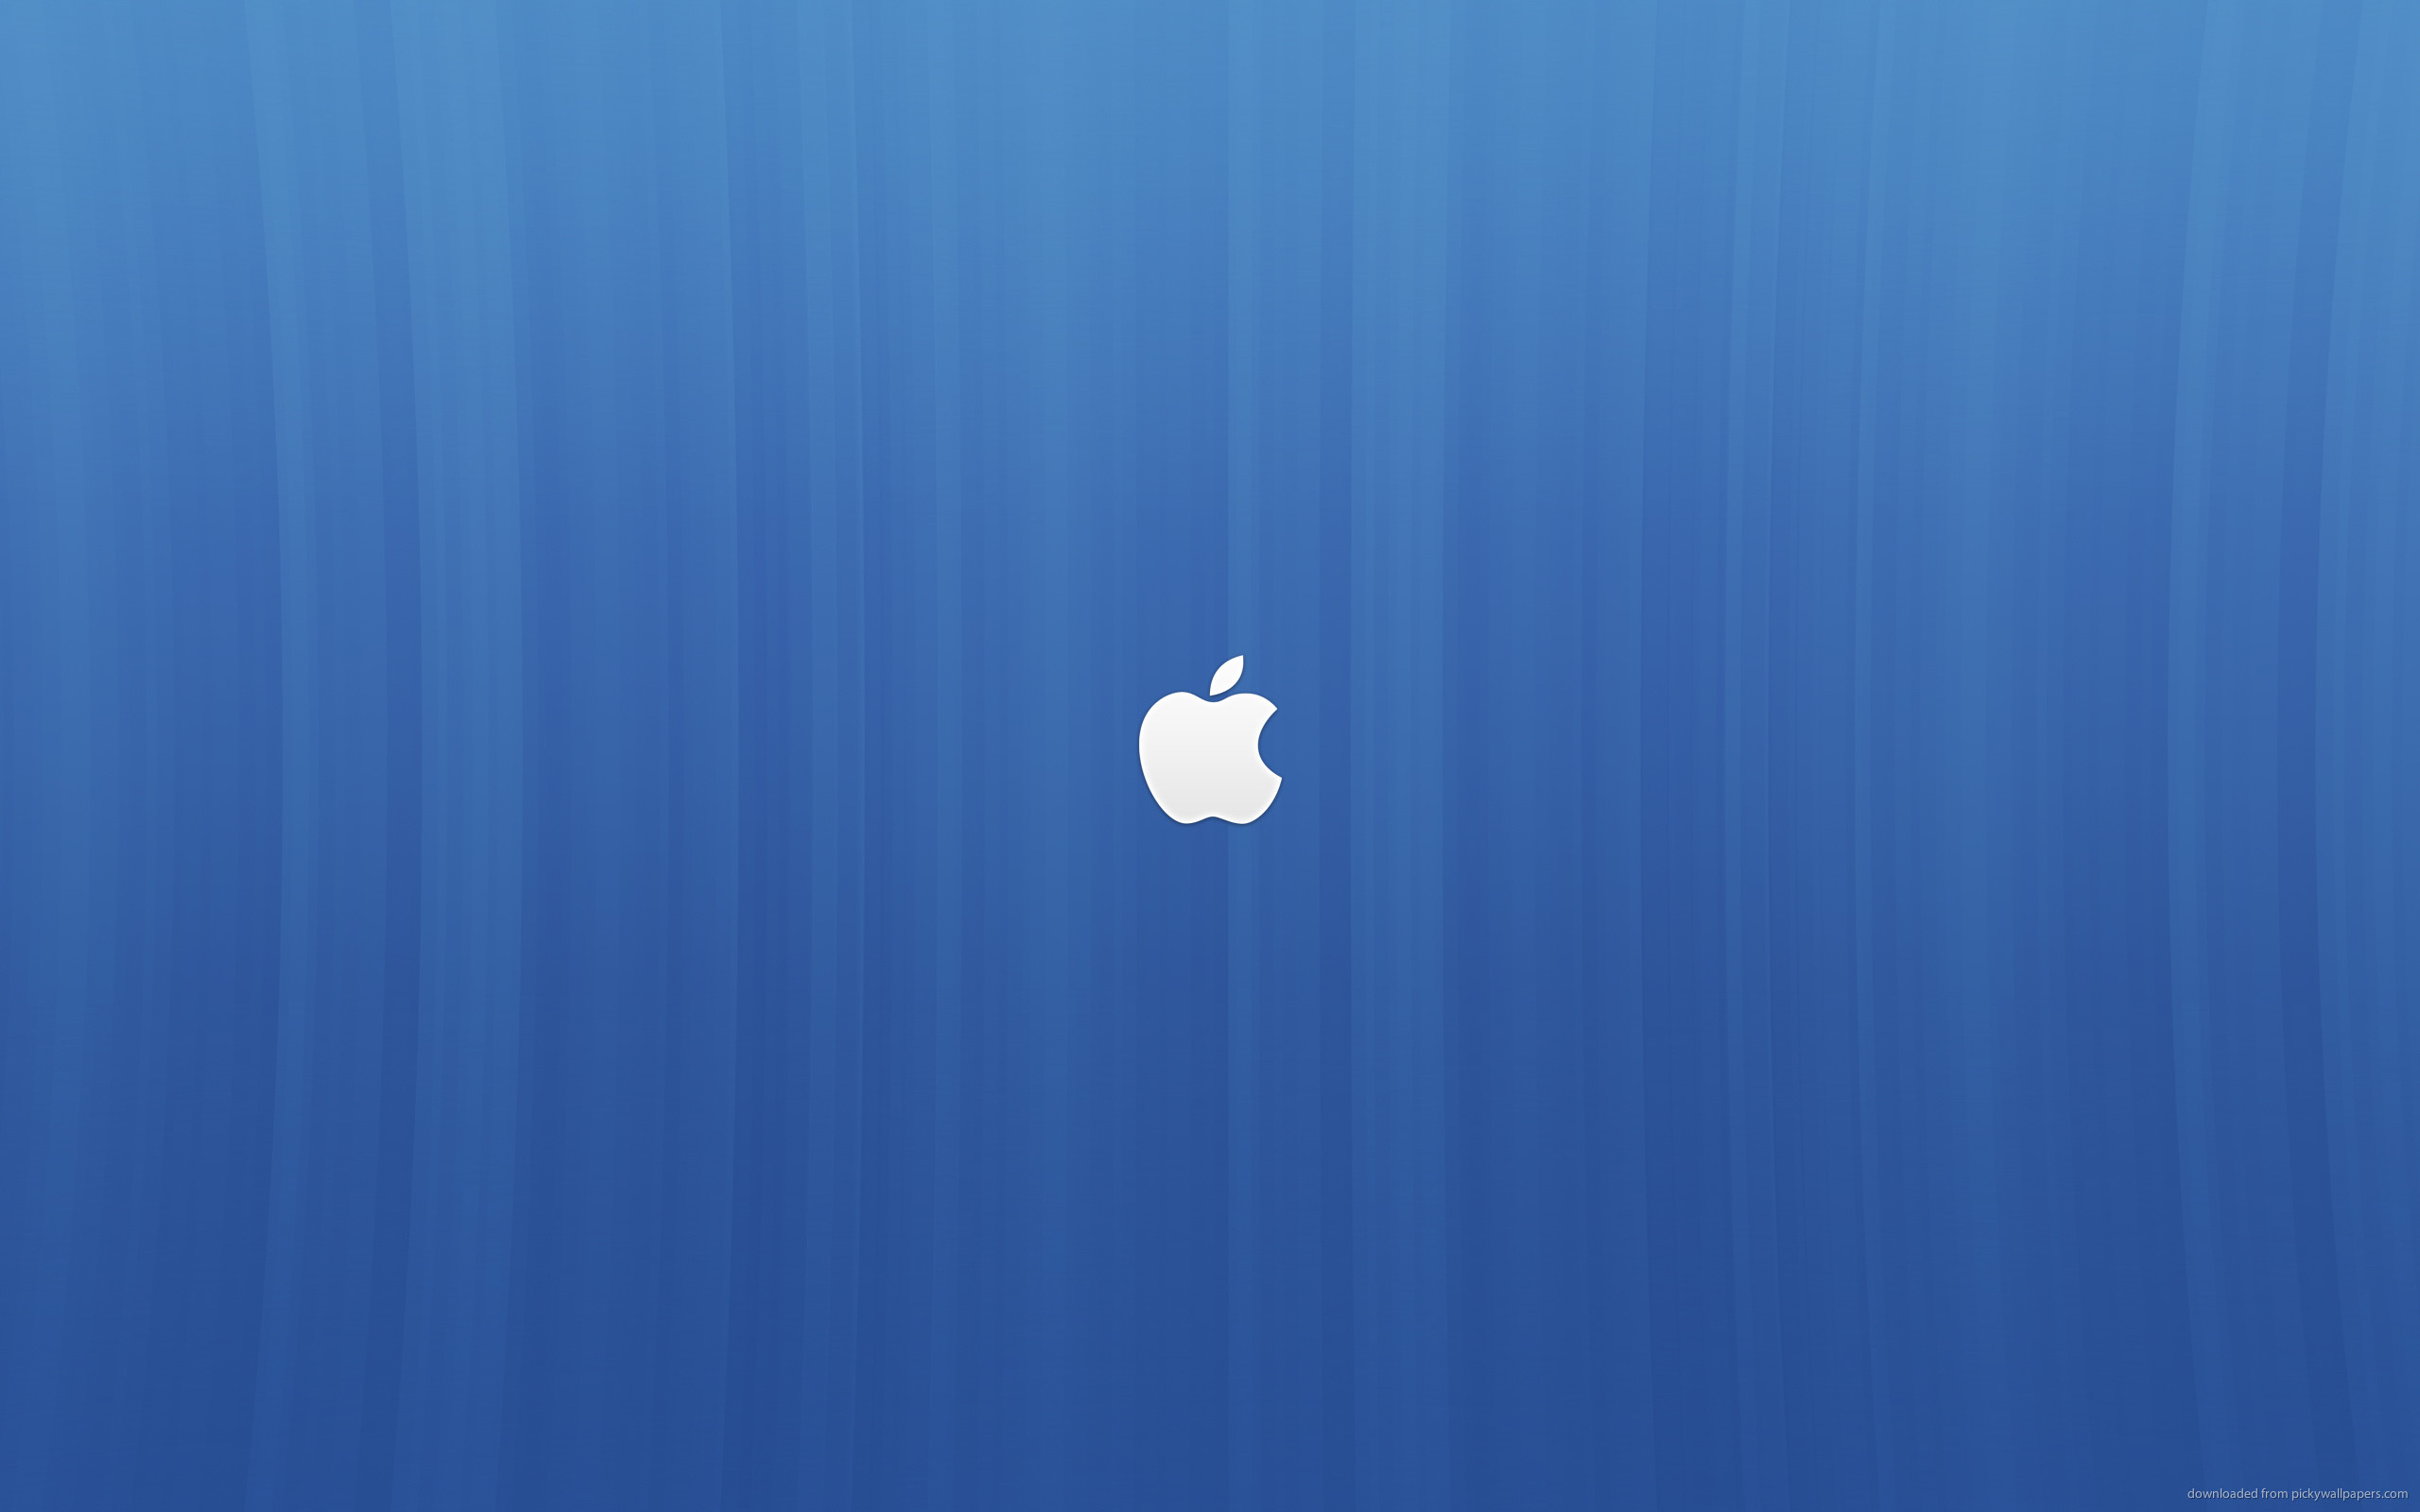 2560x1600 Apple logo on a blue background for